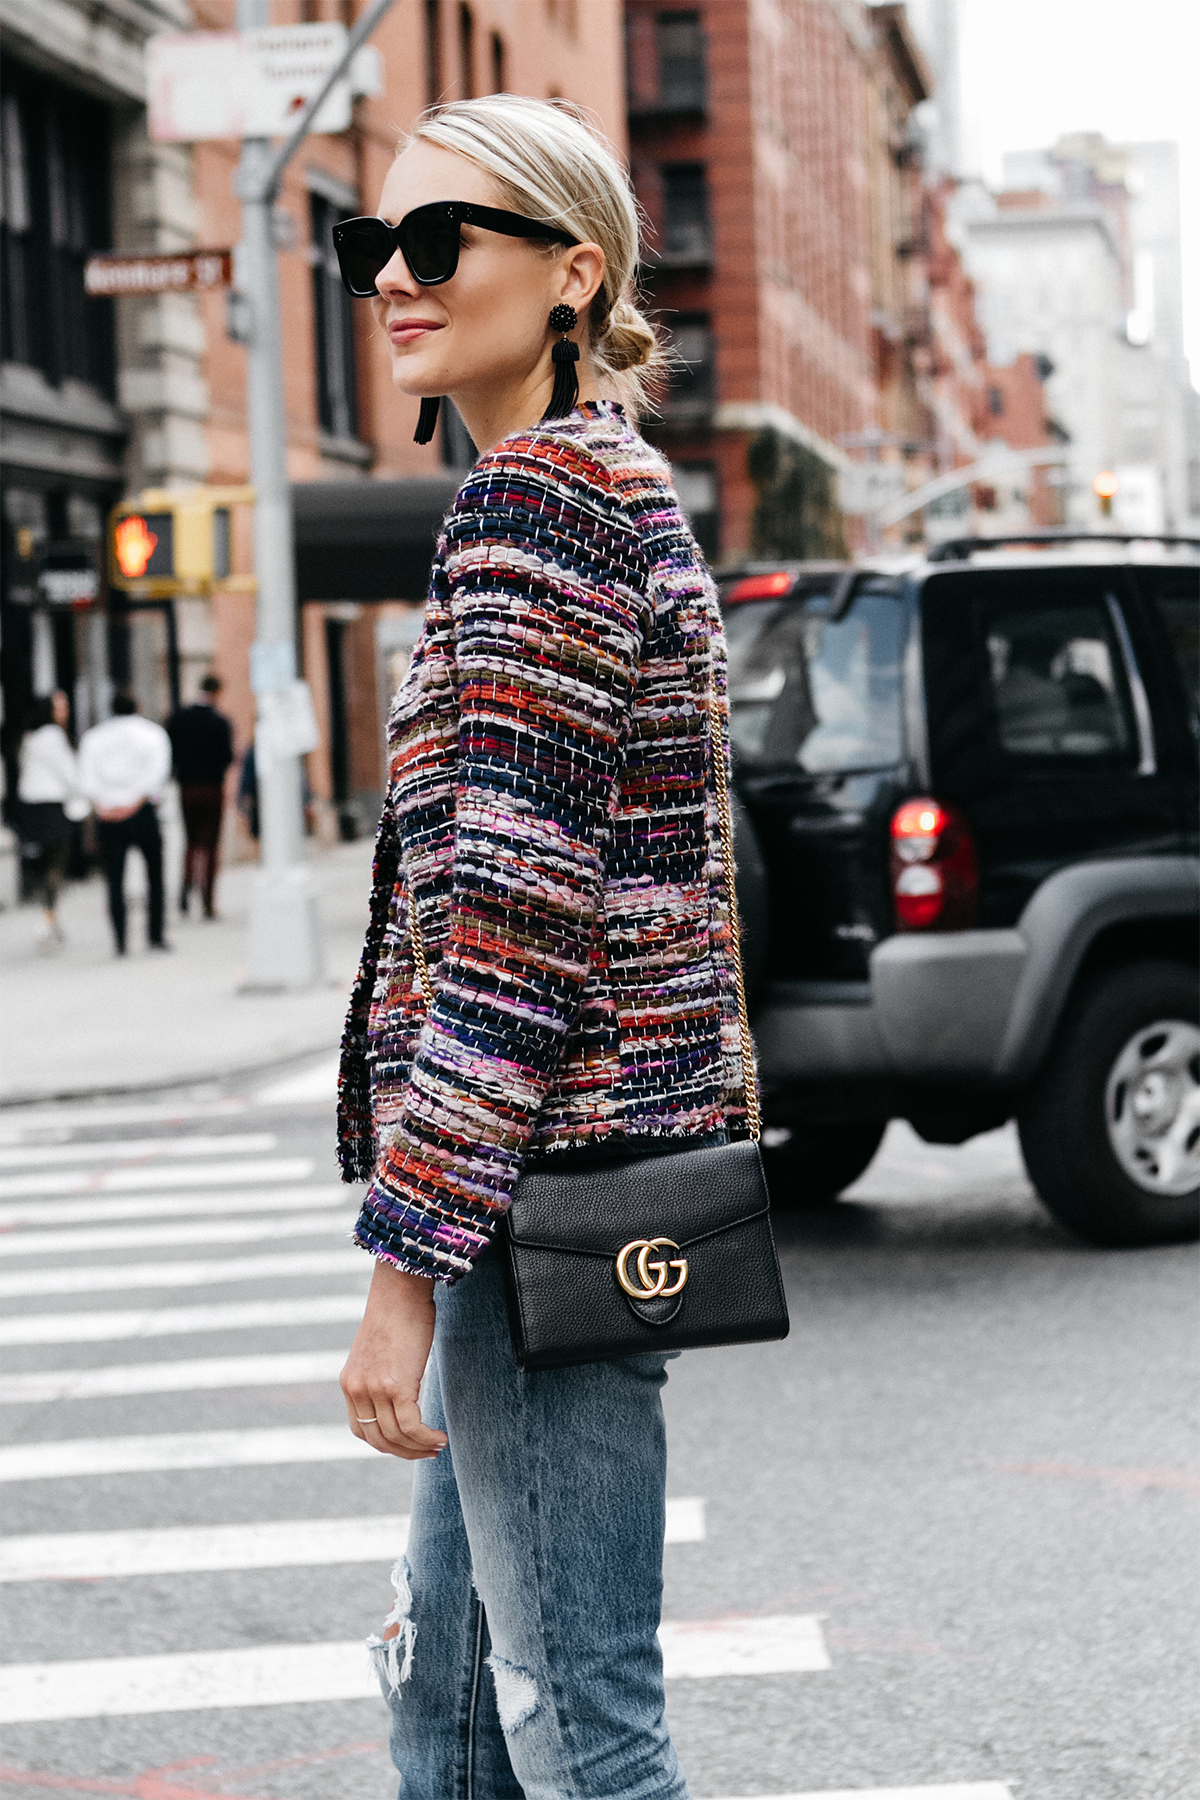 Blonde Woman Wearing IRO Multicolored Tweed Jacket Gucci Marmont Handbag Fashion Jackson Dallas Blogger Fashion Blogger Street Style NYFW